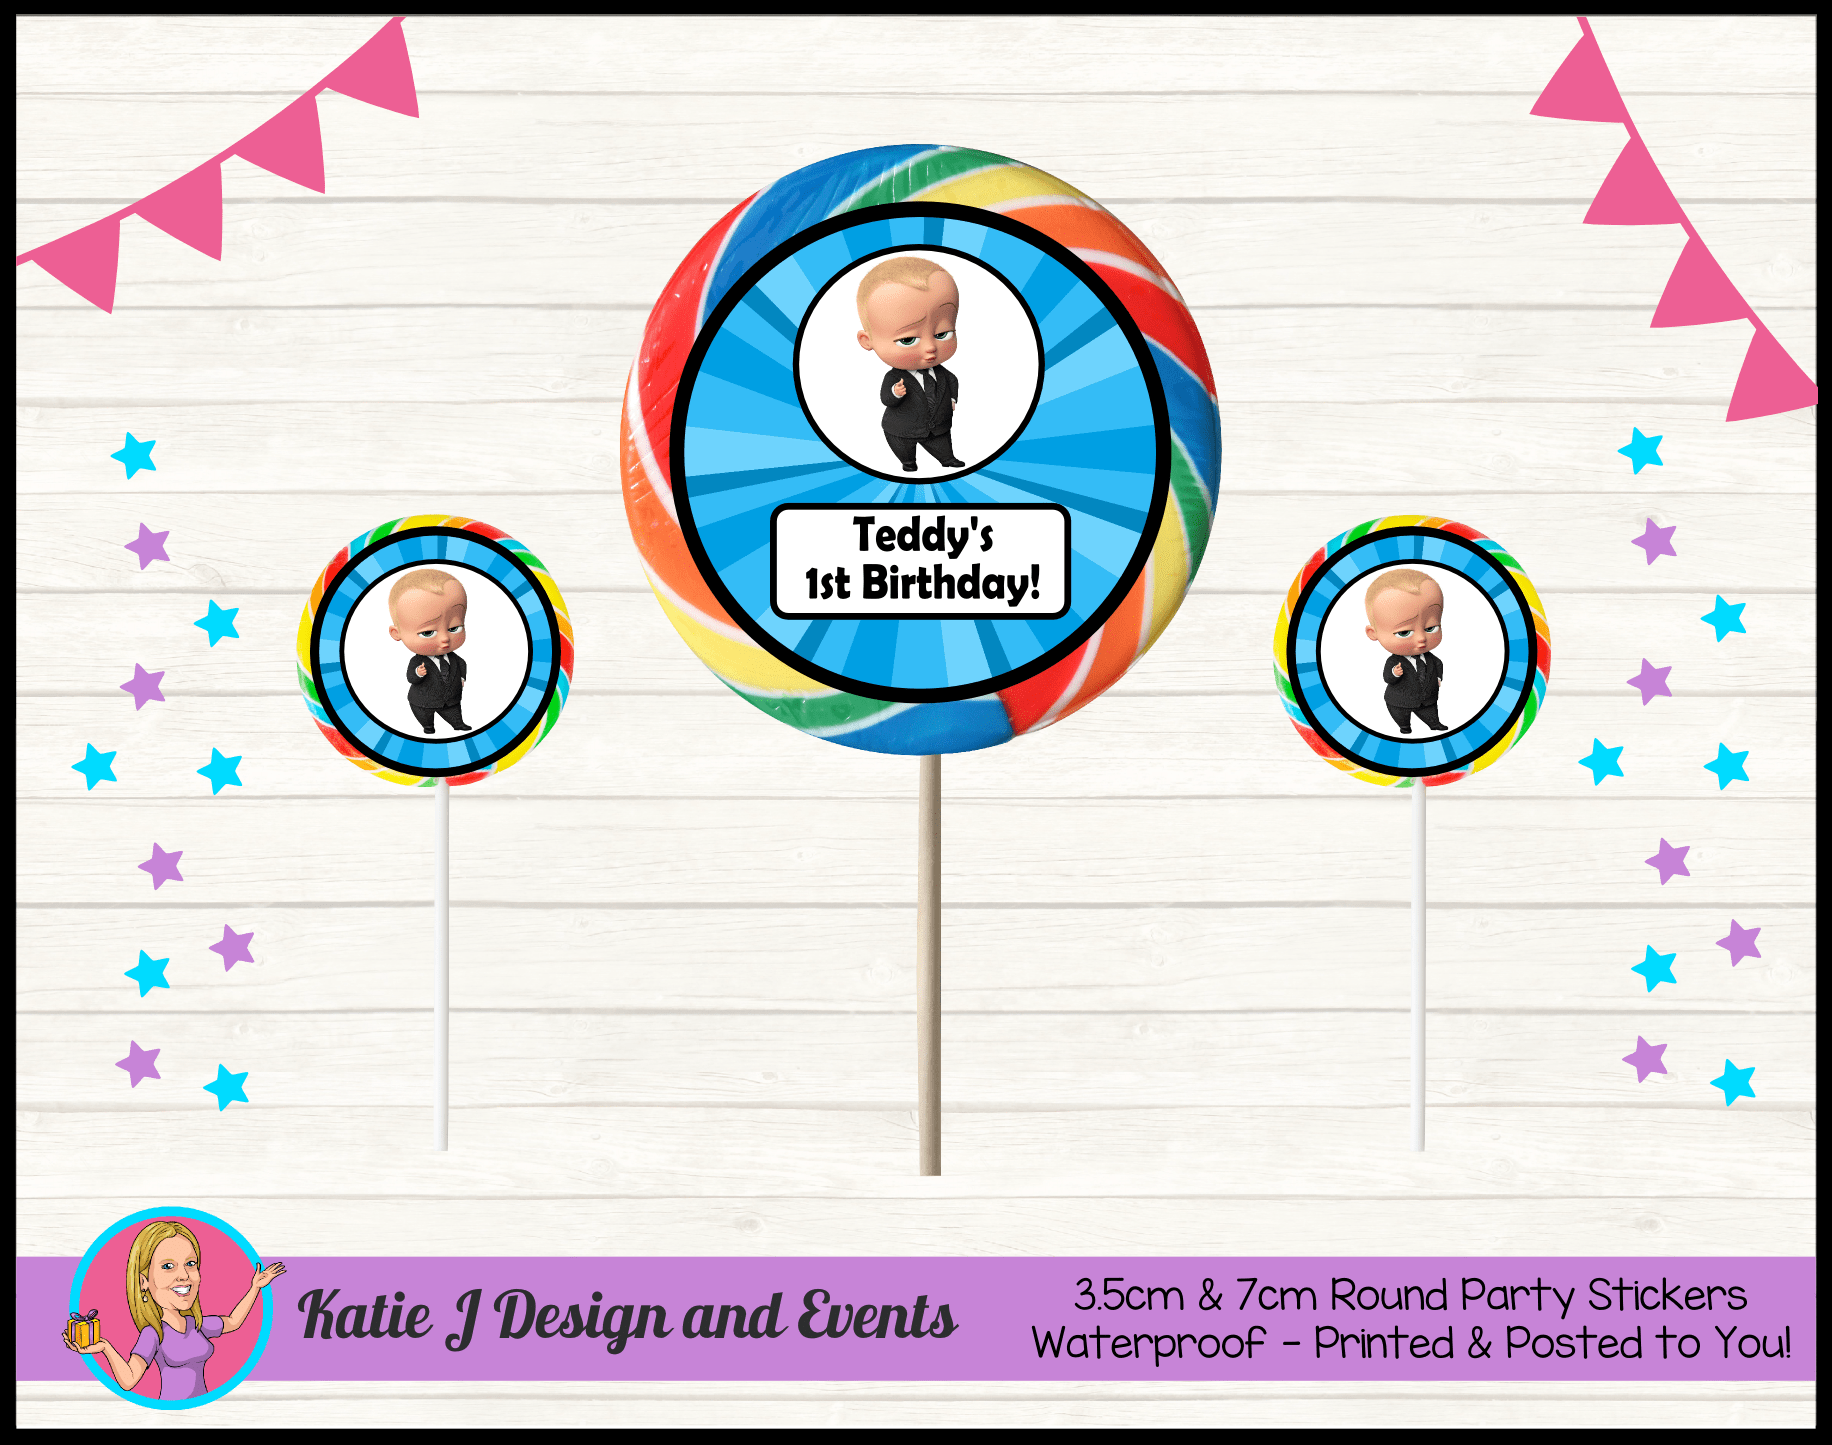 Personalised Boss Baby Birthday Party Decorations Katie J Design And Events